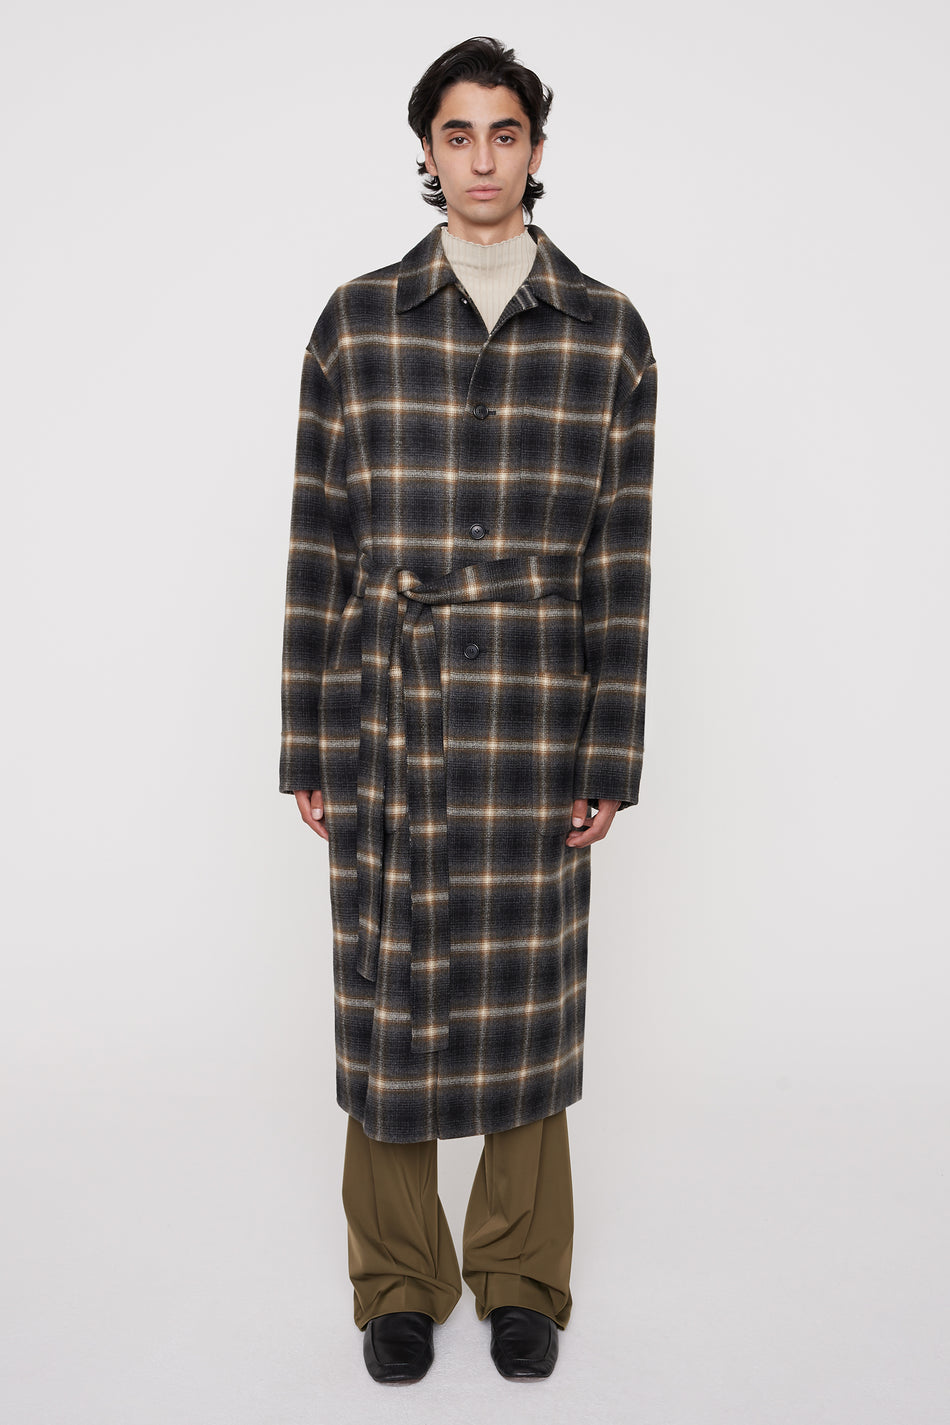 CMMN SWDN AW20 Bastian is a reversible 'robe' style belted coat in hand-stitched double-faced 100% virgin Italian wool. Featuring two large patch pockets on both sides and a small chest pocket.